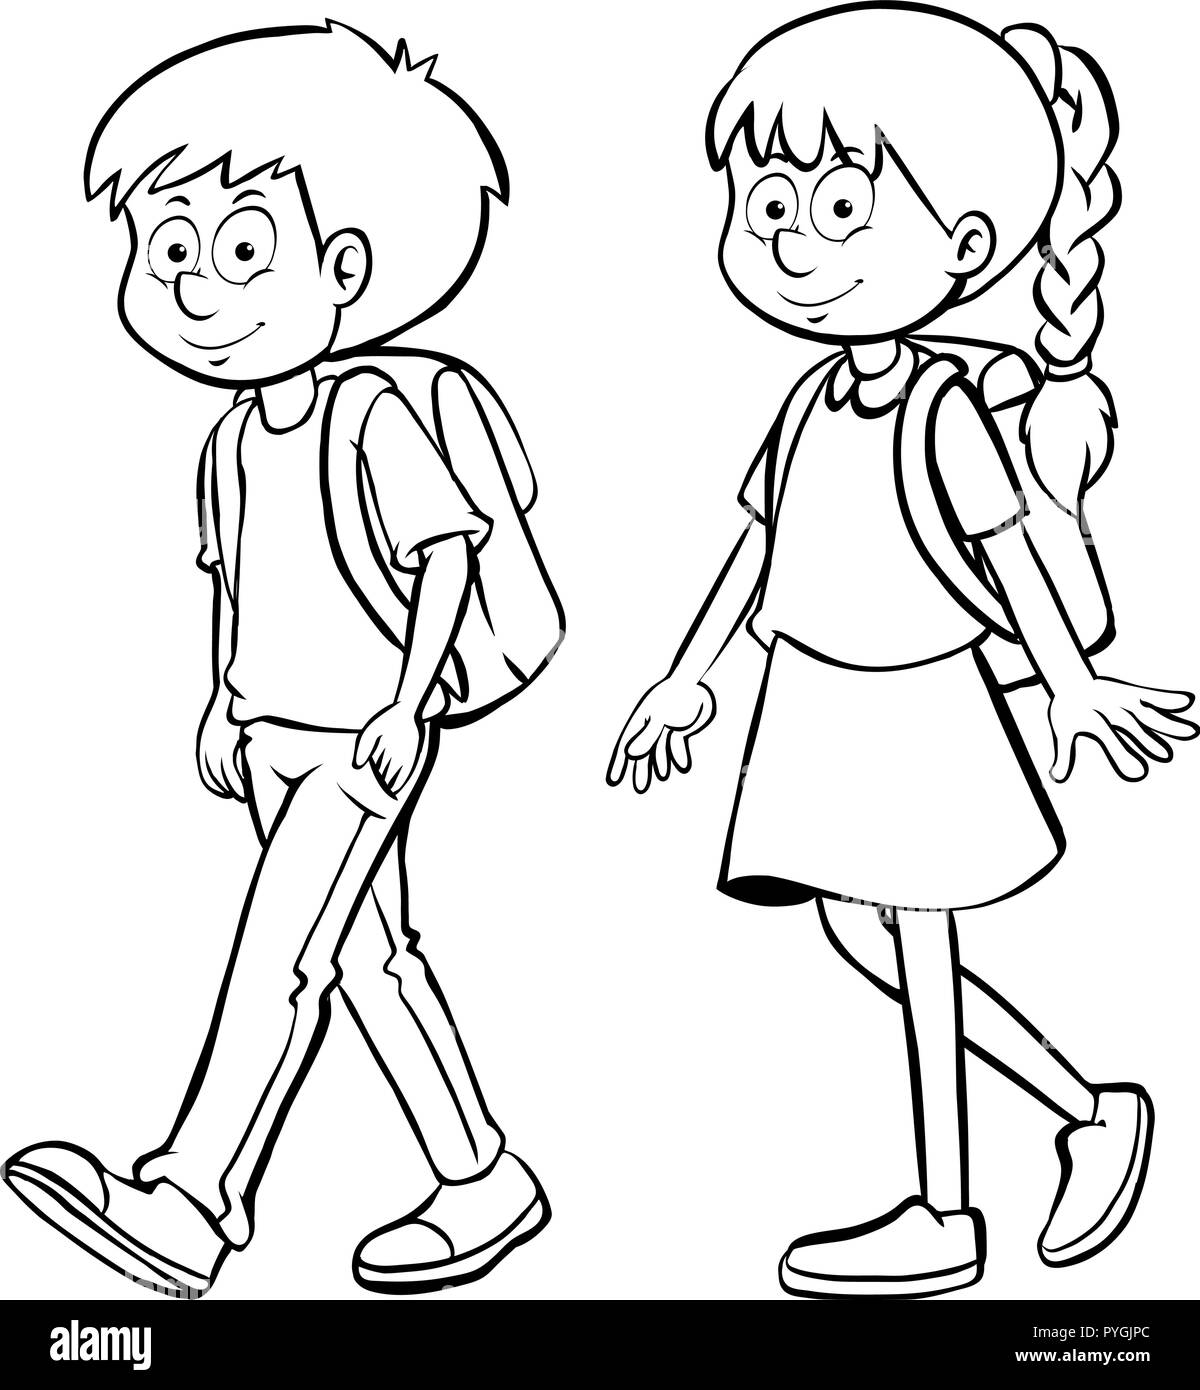 Human Outline For Boy And Girl Illustration Stock Vector